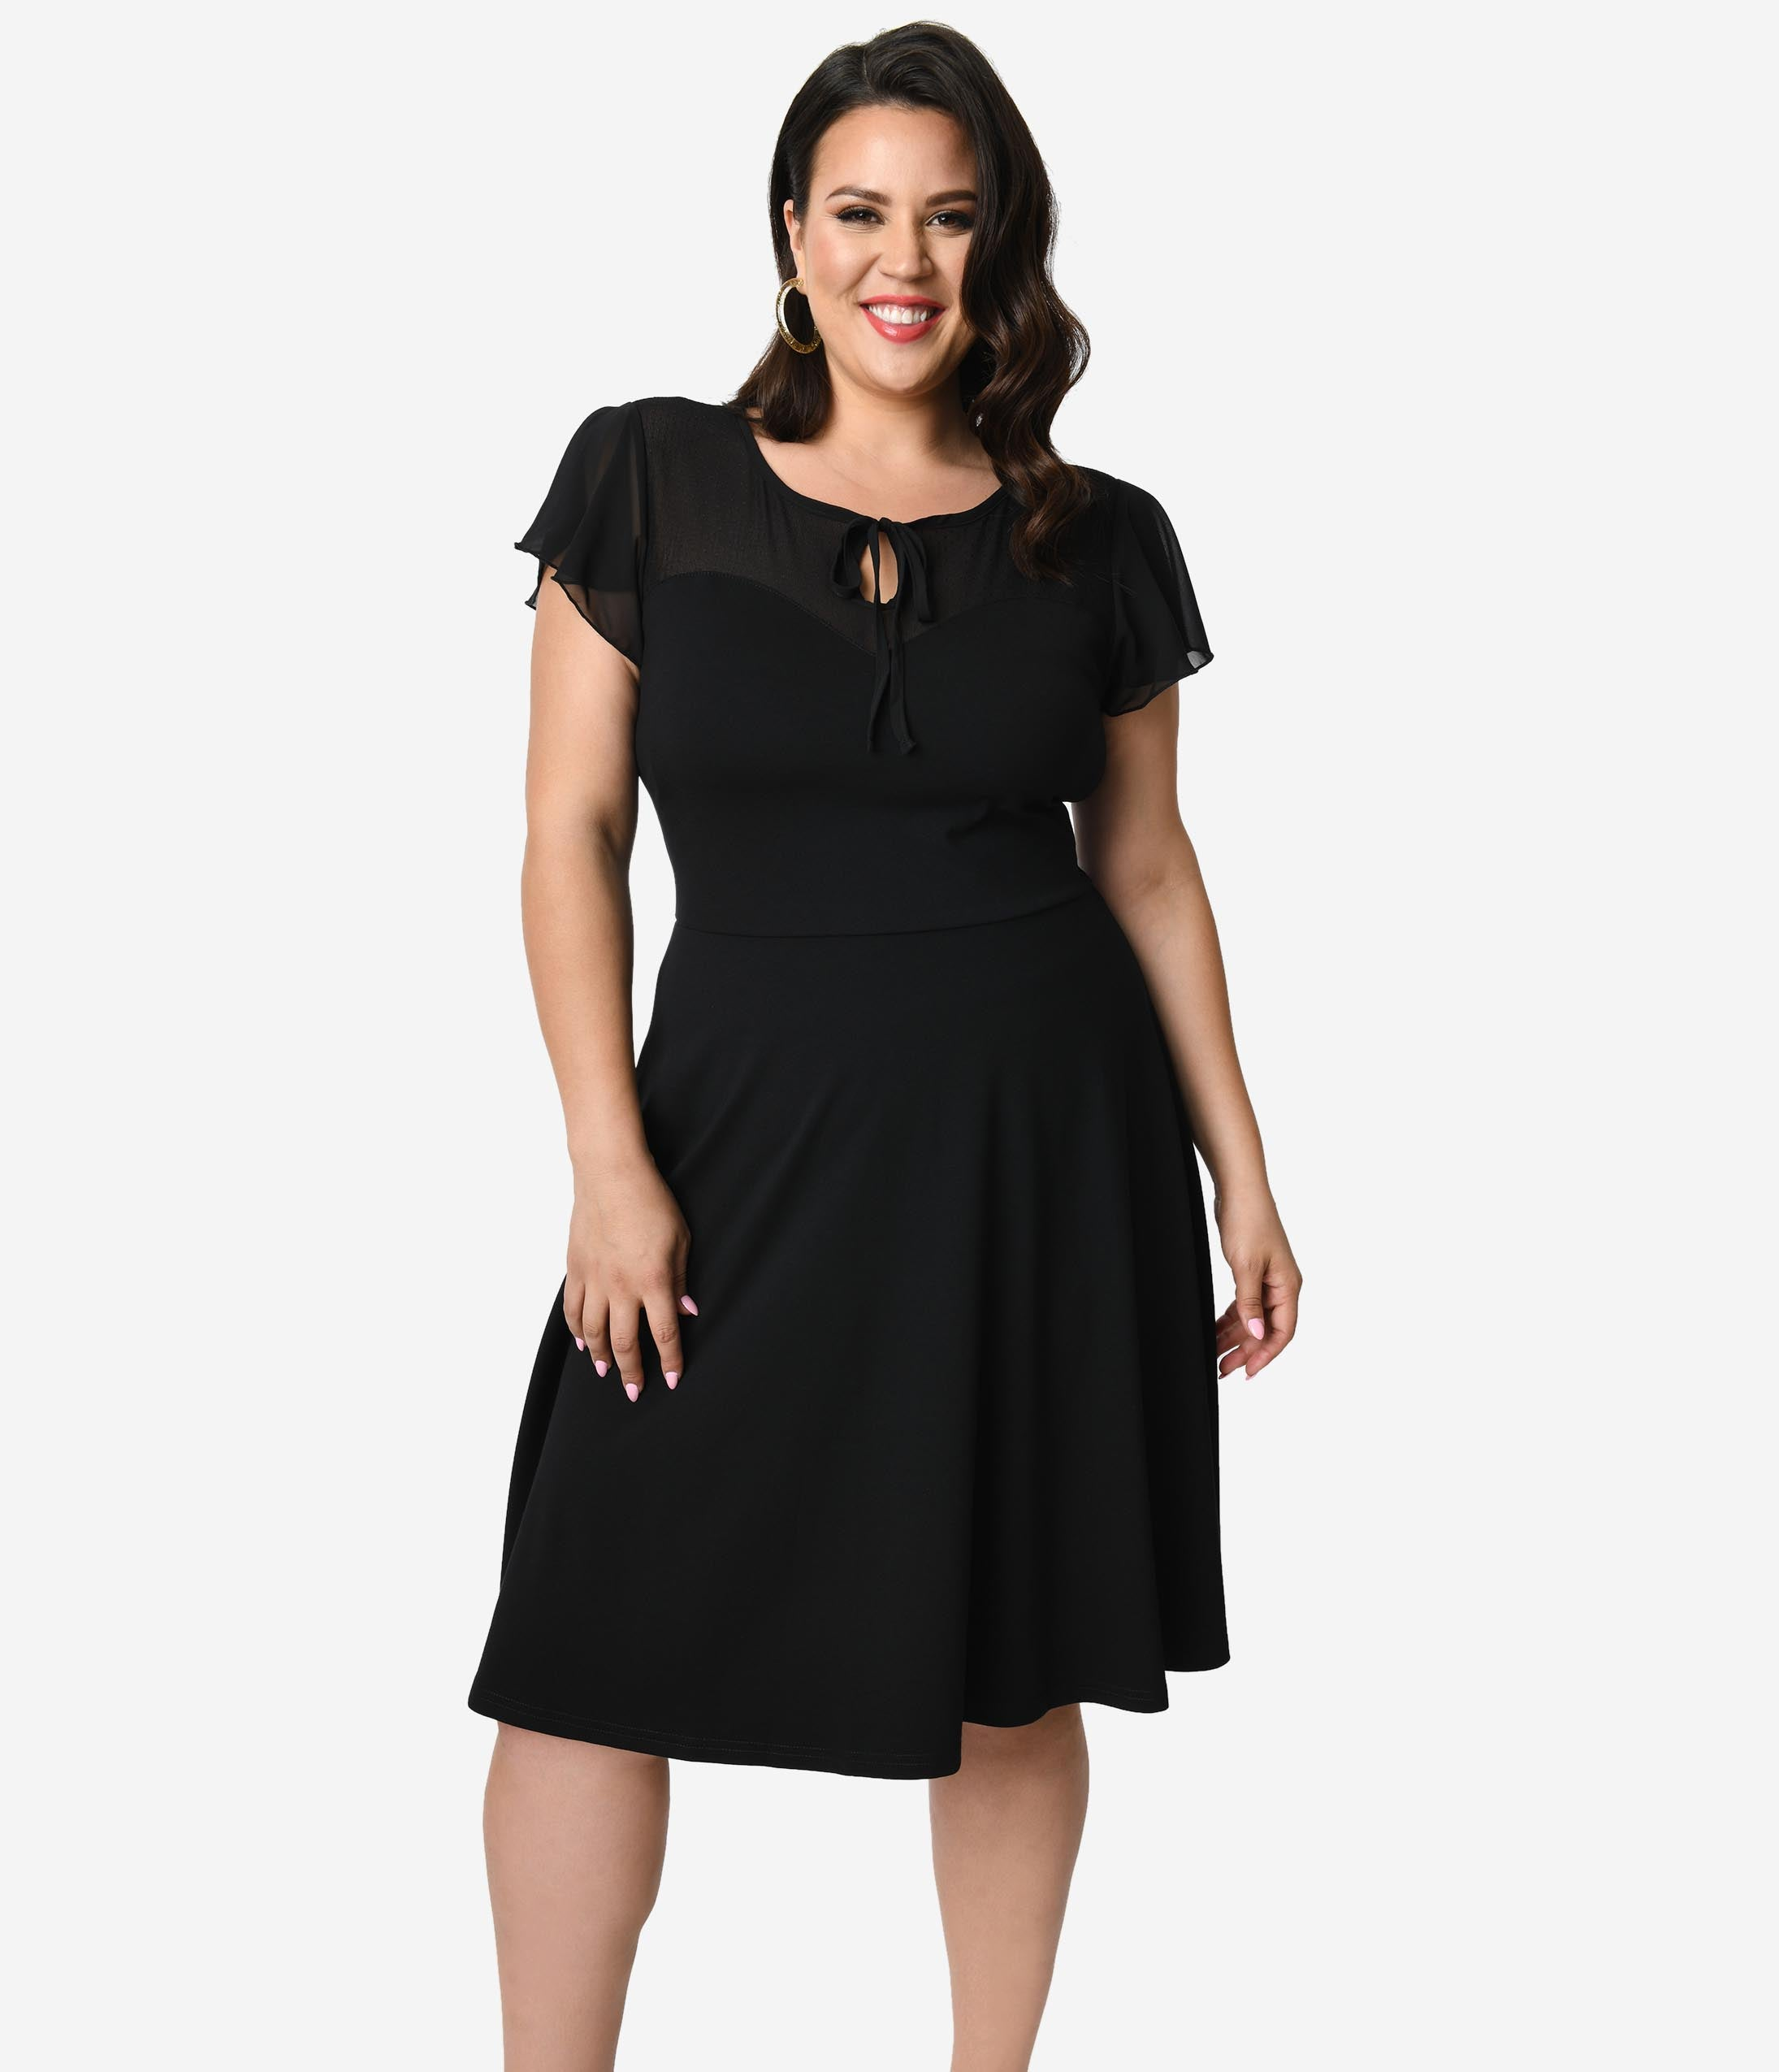 cd362b1a79de ... Women / Summer Dress Cotton. $98.00 Etsy · 1930s Day Dresses, Afternoon  Dresses History Voodoo Vixen Plus Size Black Swiss Dot Mesh Flutter